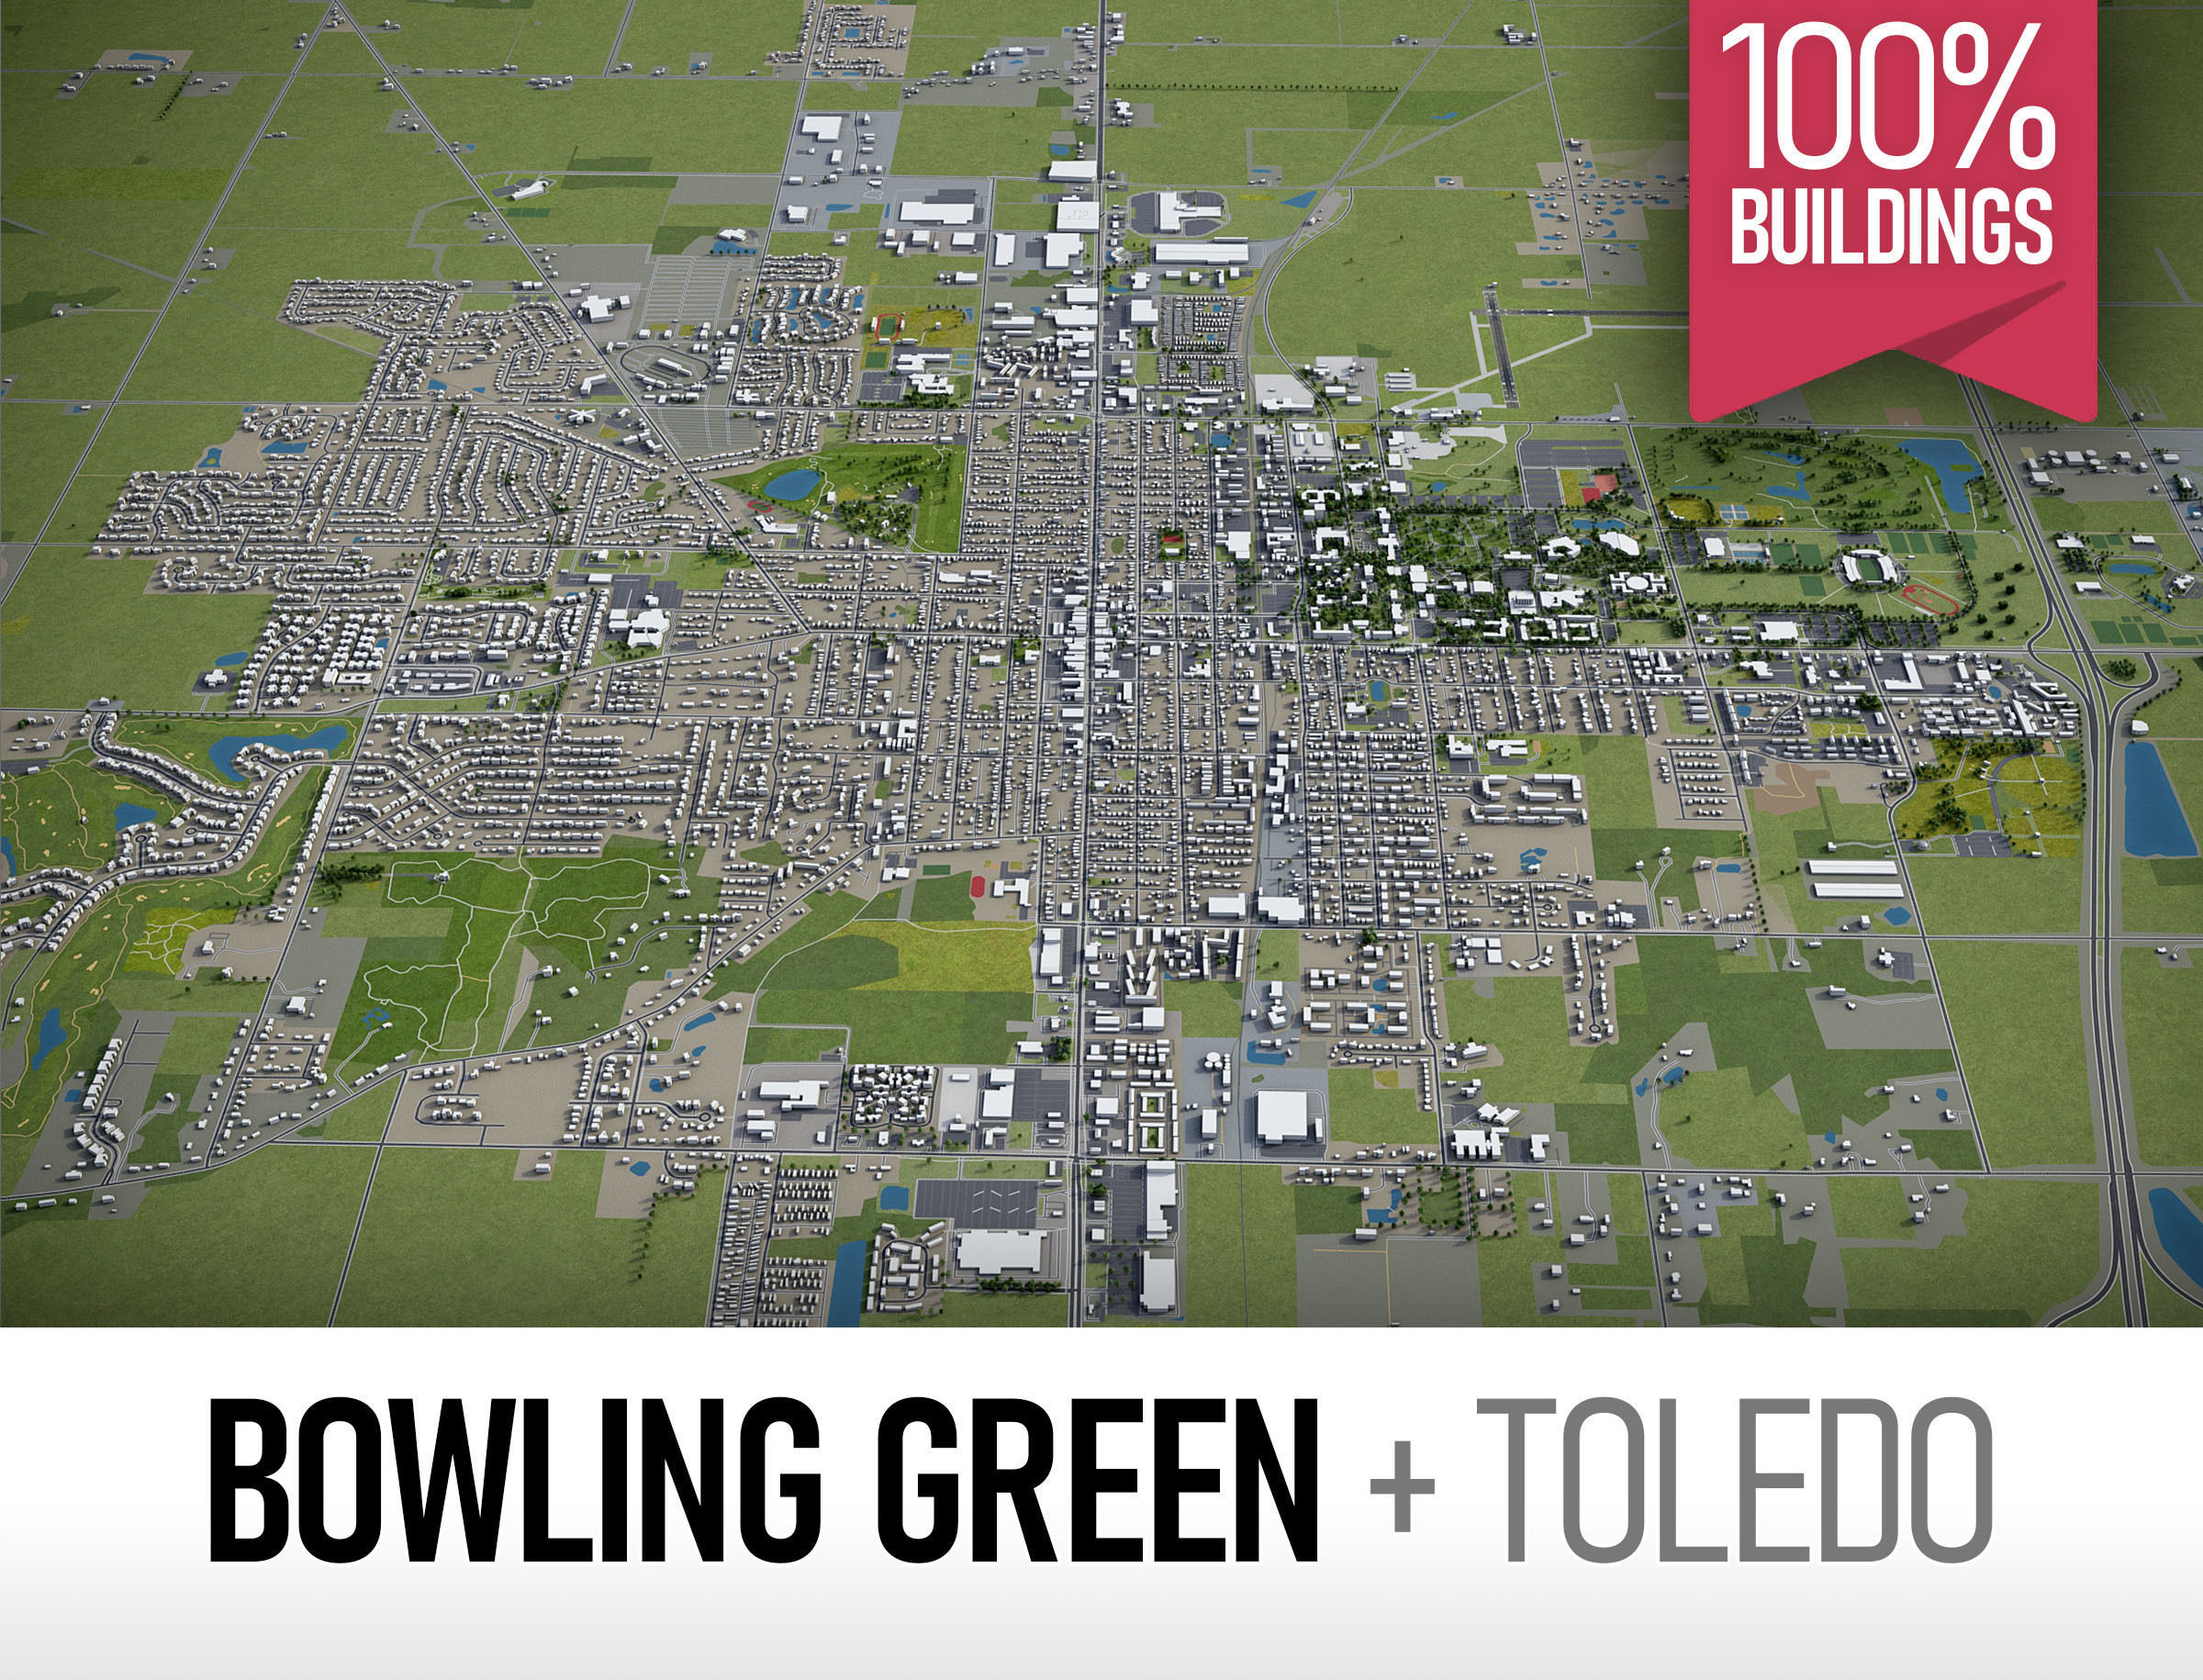 Bowling Green and Toledo - full cities